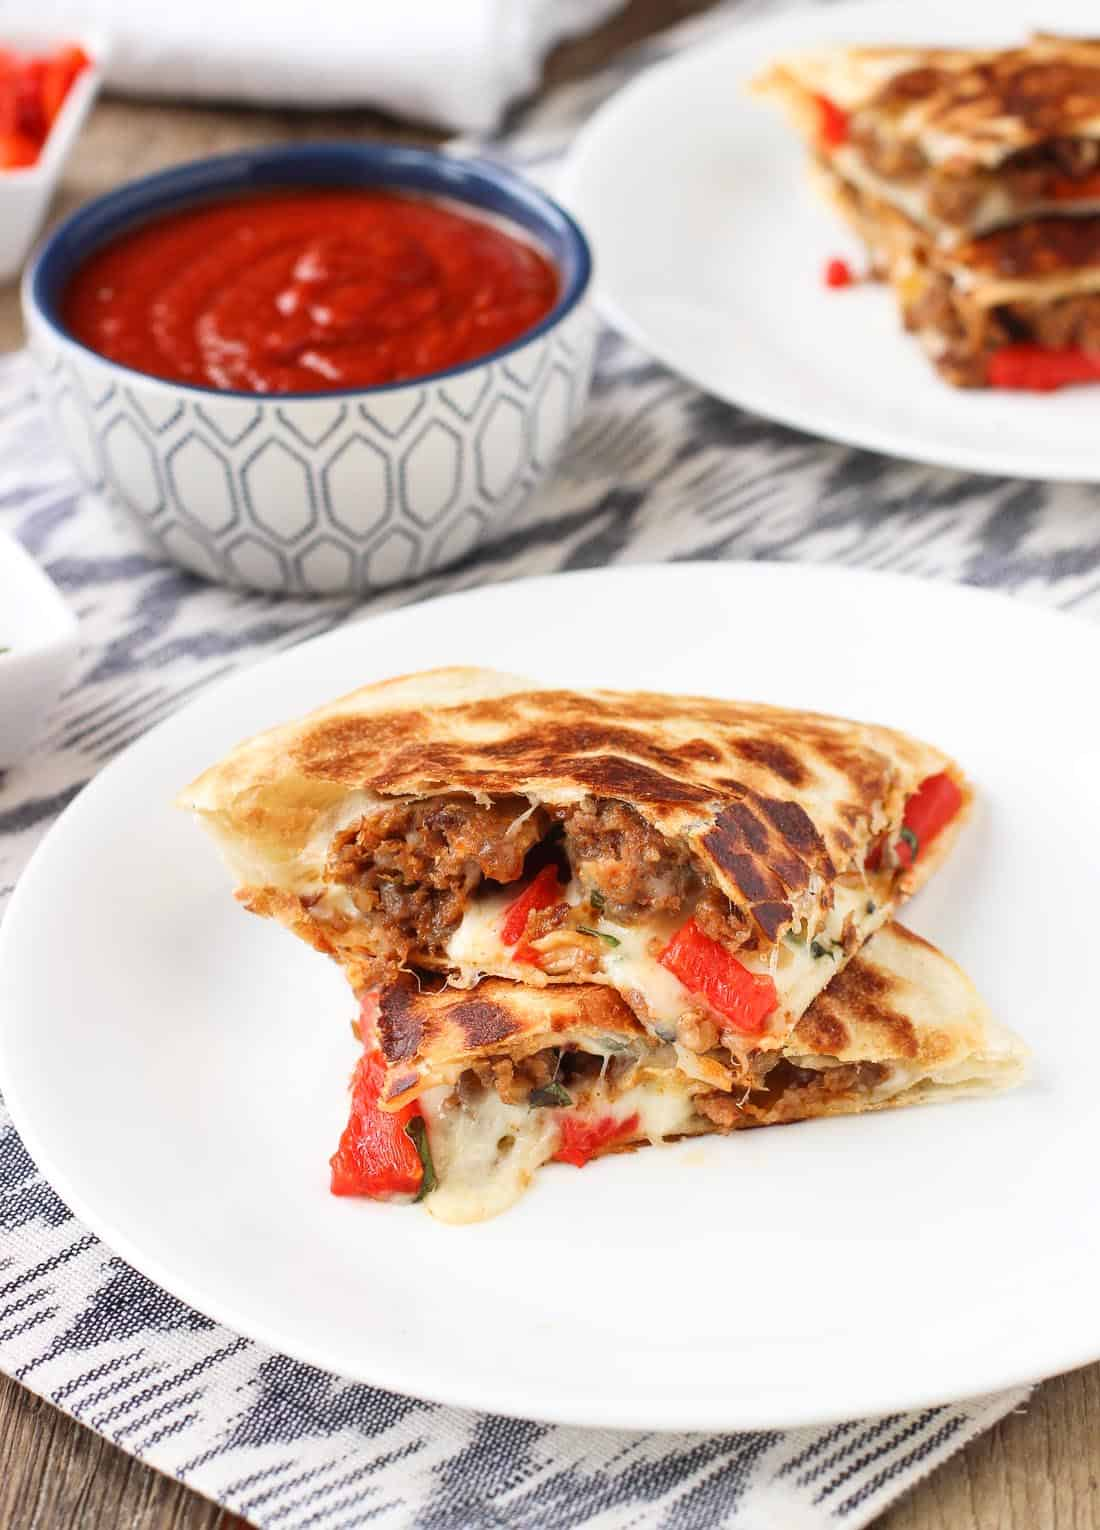 Stacked Italian sausage quesadillas on two plates with a dipping bowl of marinara sauce.